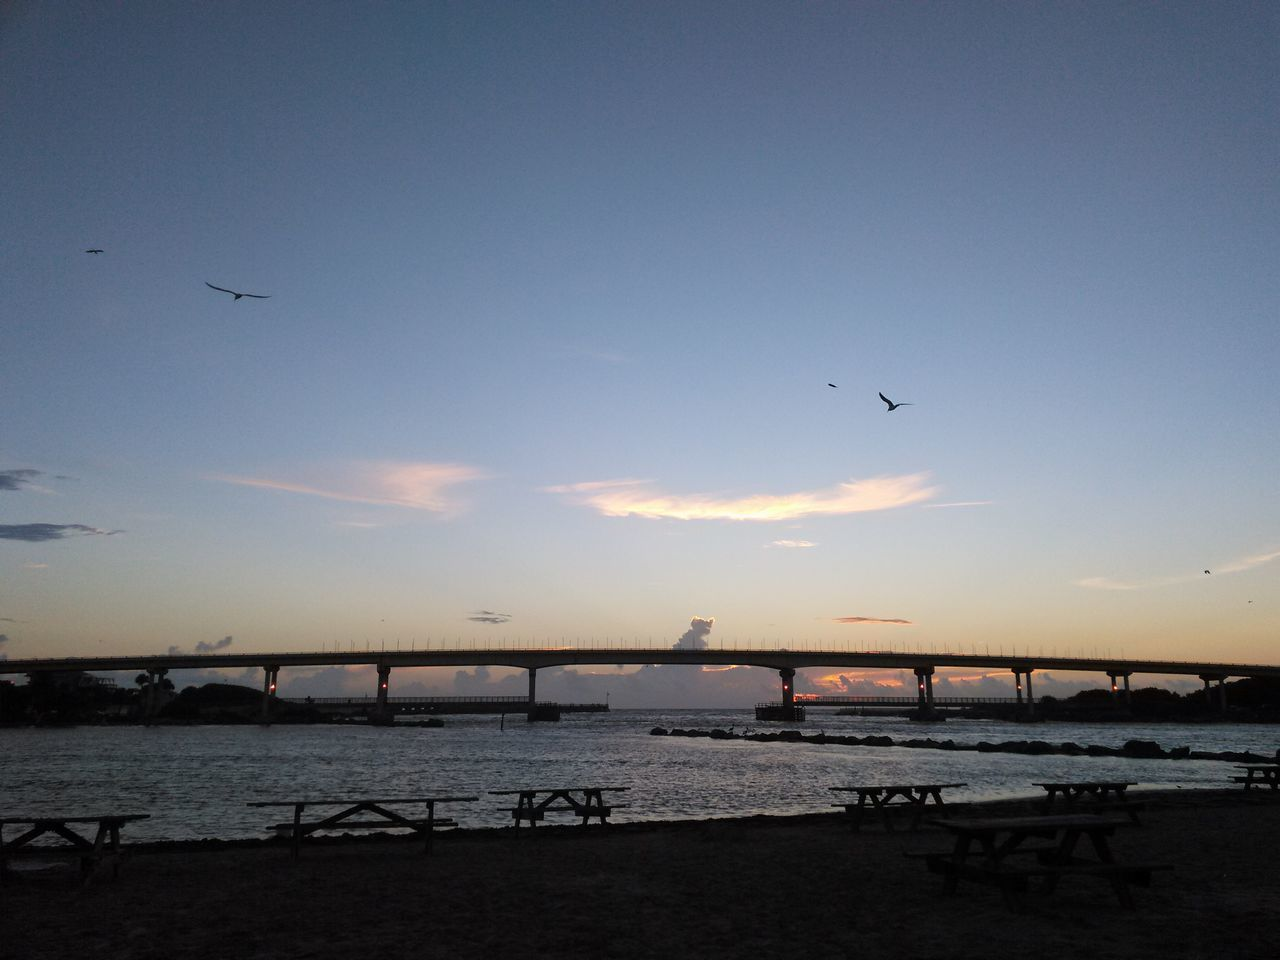 sunset, bird, bridge - man made structure, silhouette, flying, sky, water, connection, built structure, architecture, sea, nature, outdoors, animals in the wild, no people, animal themes, clear sky, scenics, beauty in nature, city, day